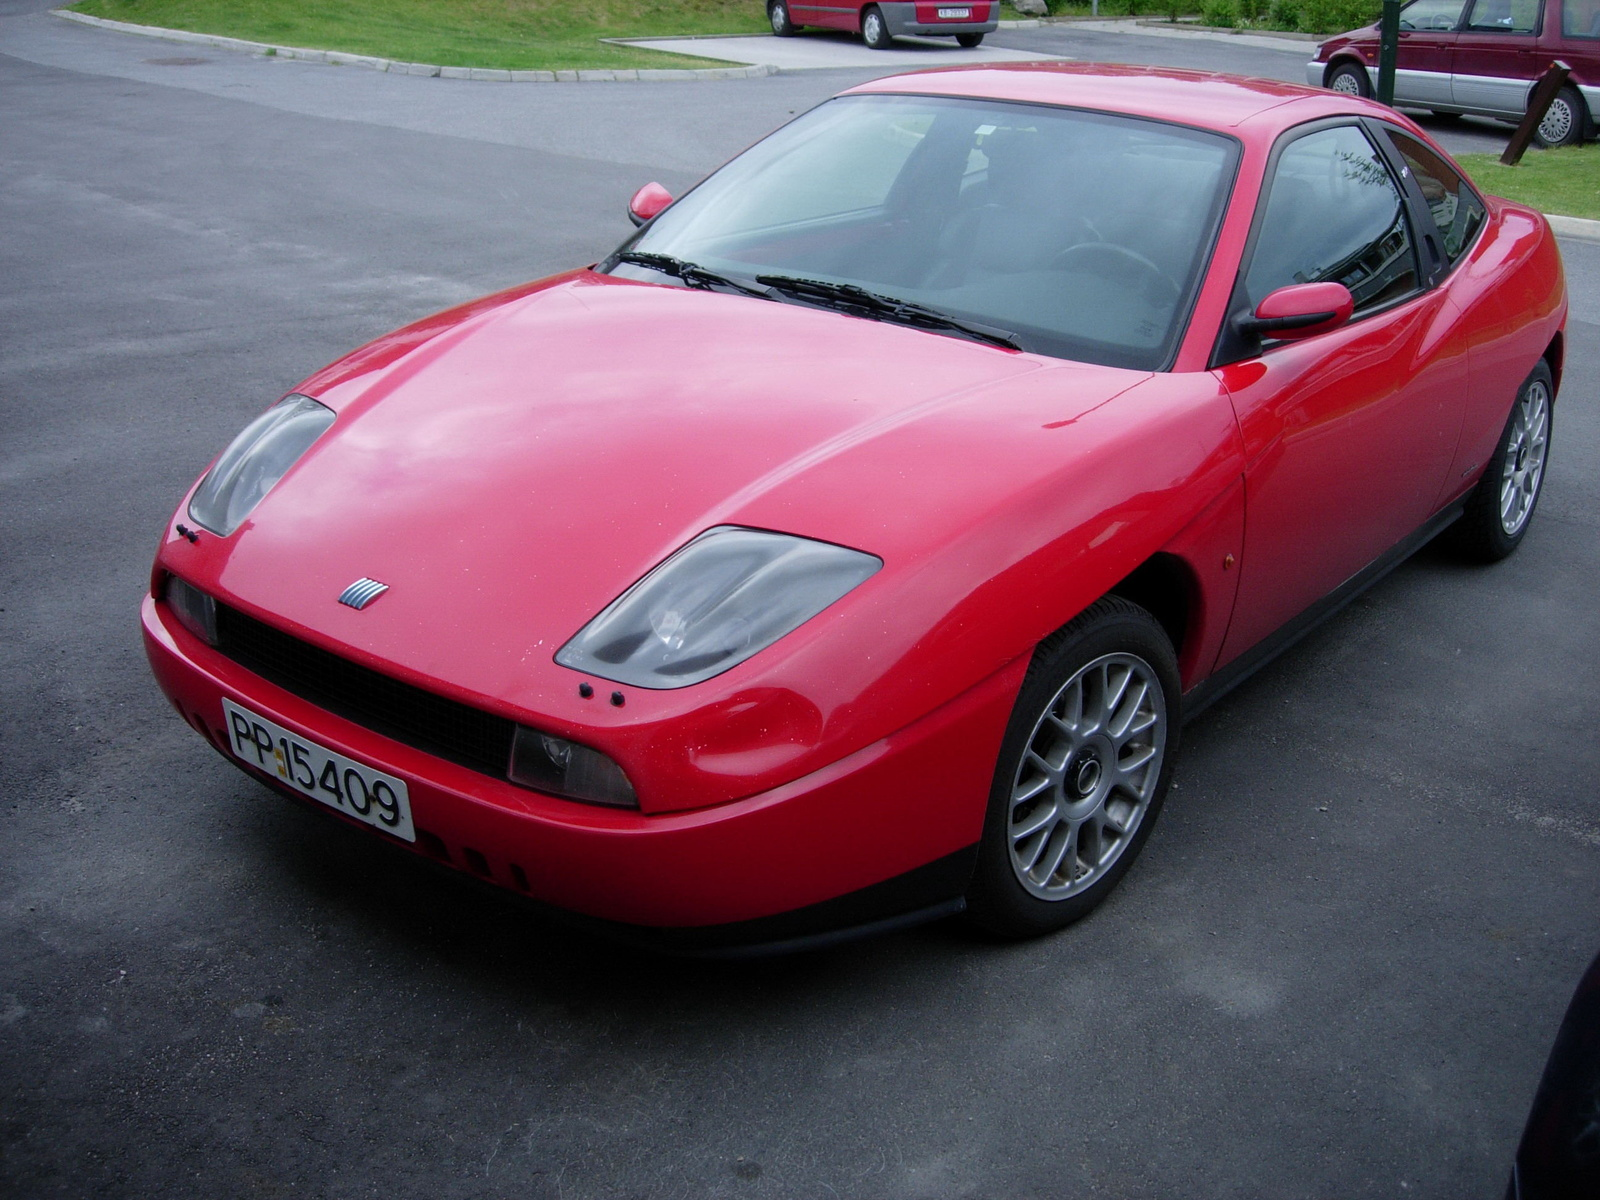 1996 Fiat Coupe #1